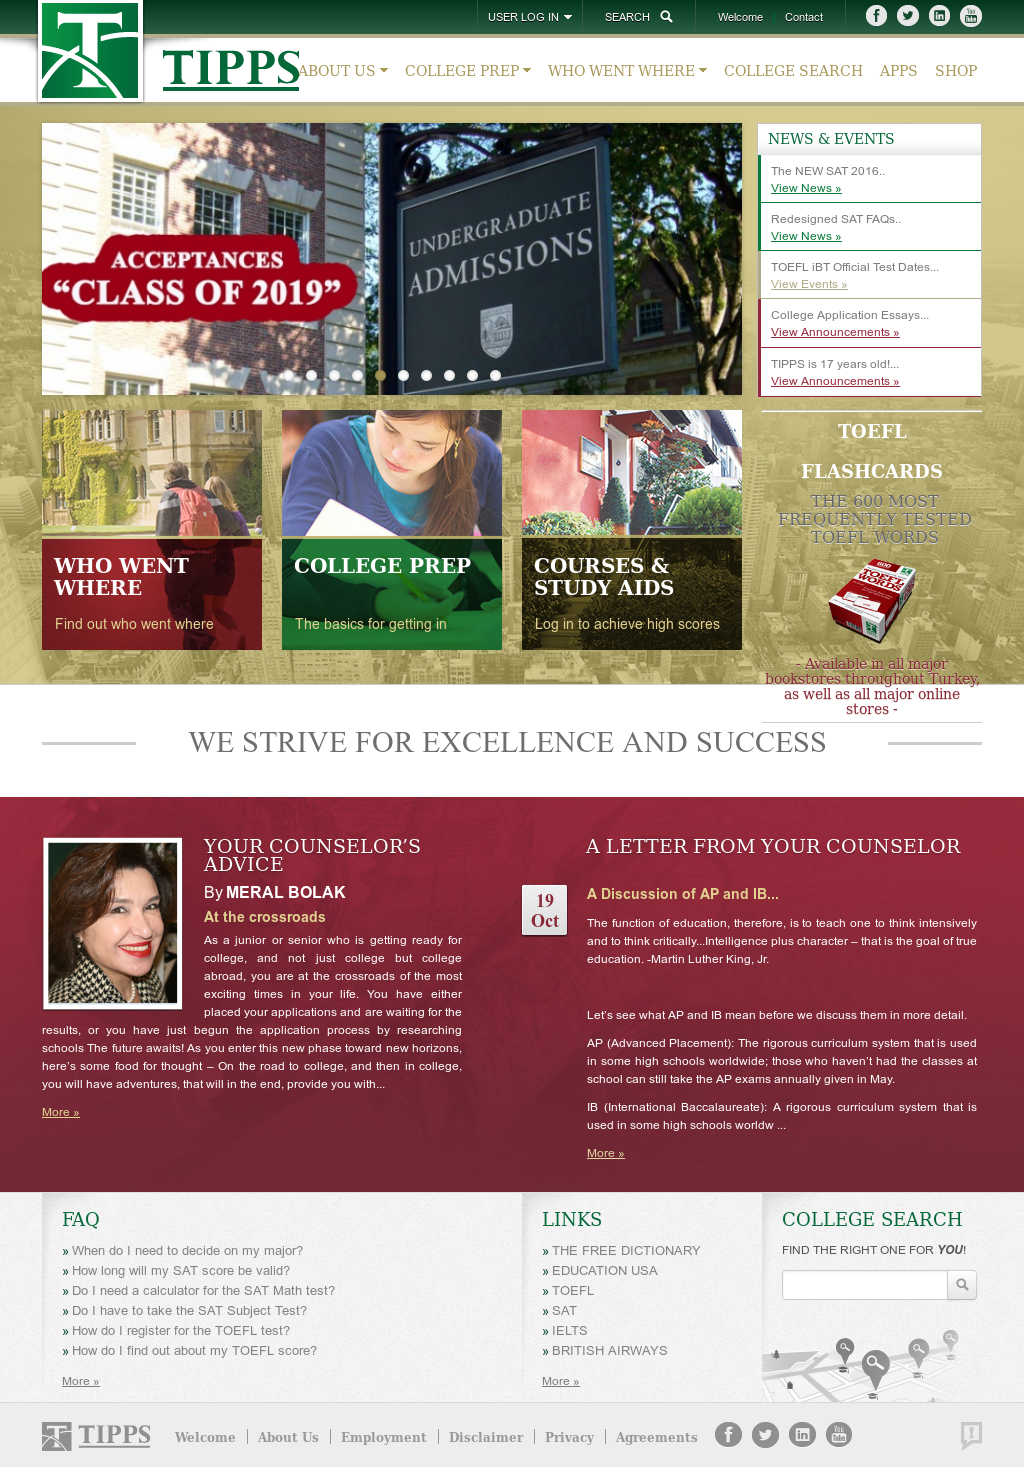 Tippsonline Competitors, Revenue and Employees - Owler Company Profile